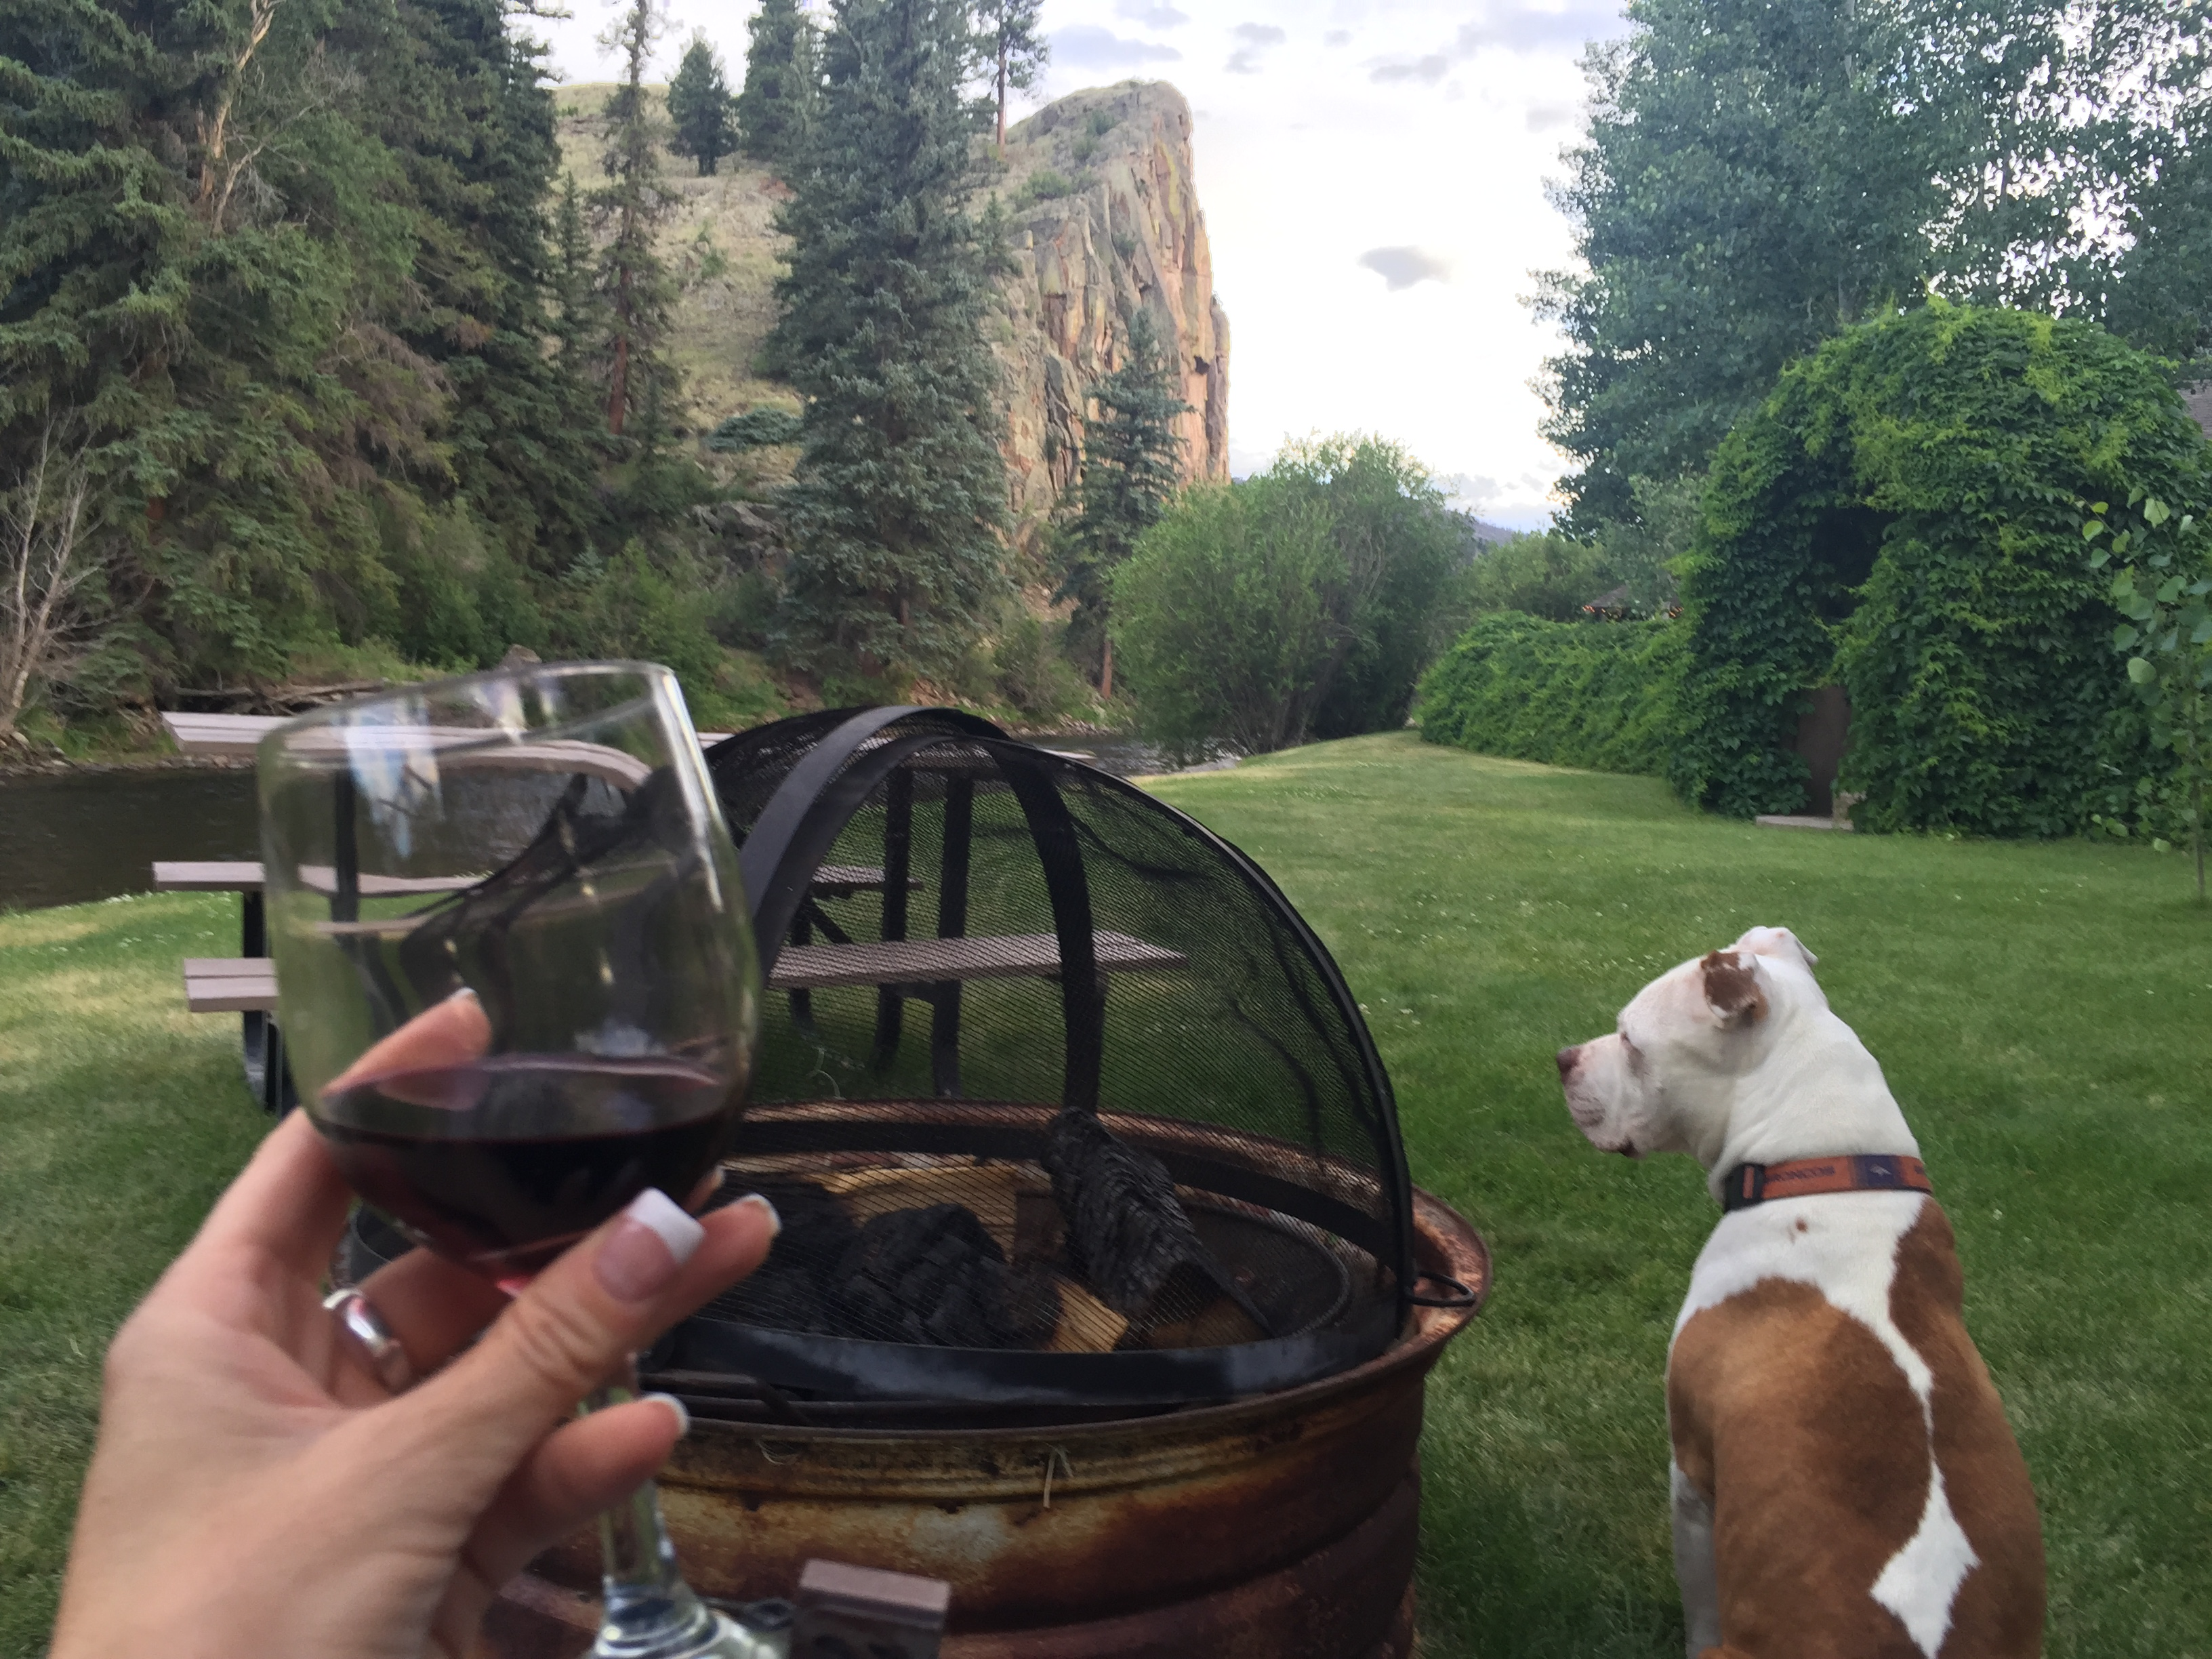 A manicured hand holds a wine glass, sitting near the firepit while looking out at the river with her dog